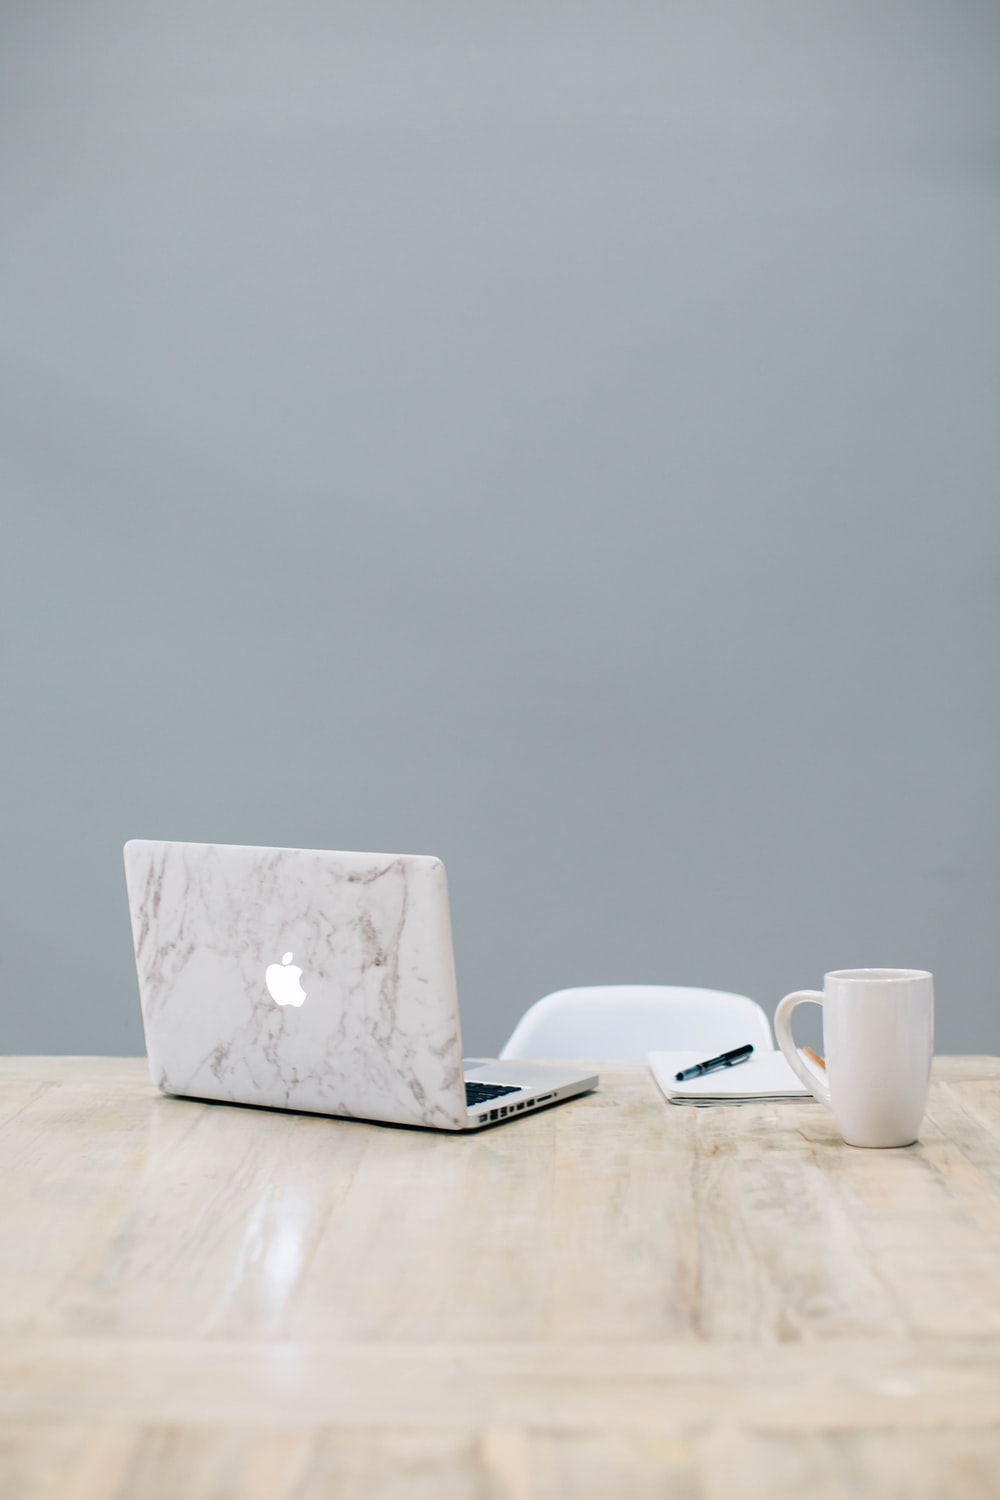 MacBook on table near mug